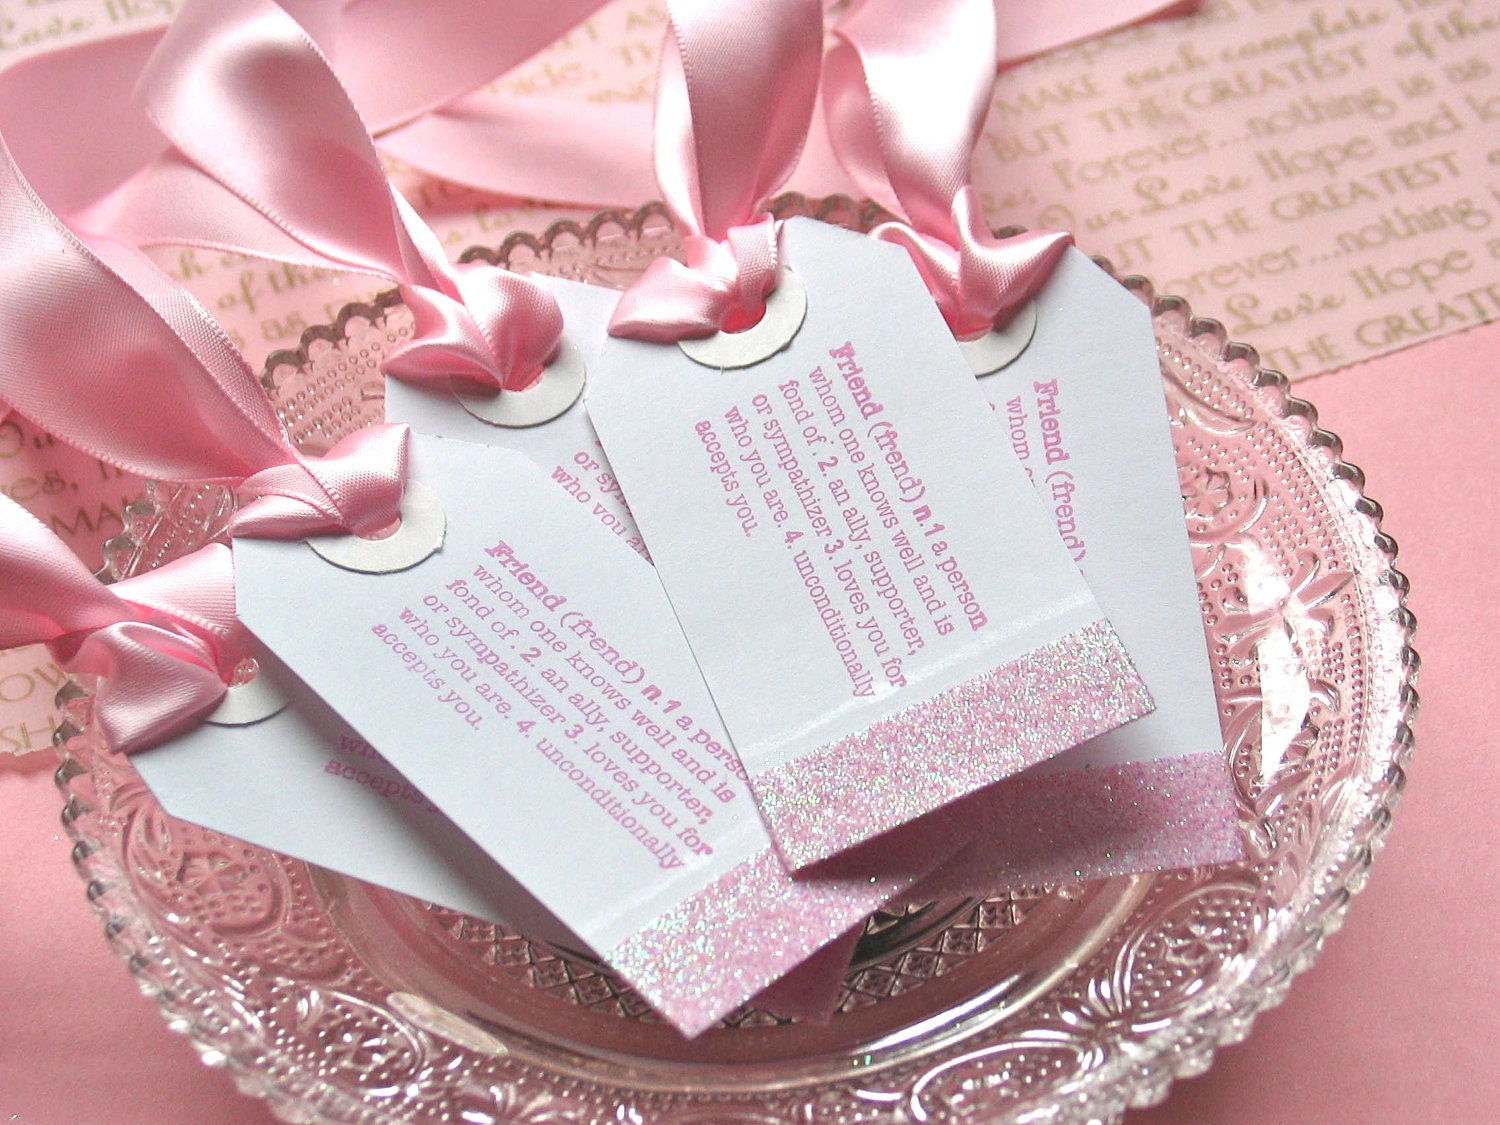 Wedding Gifts From Bridesmaids: Bridesmaids Gift Tags Wedding Gift Favor Tags Pink Set Of 5